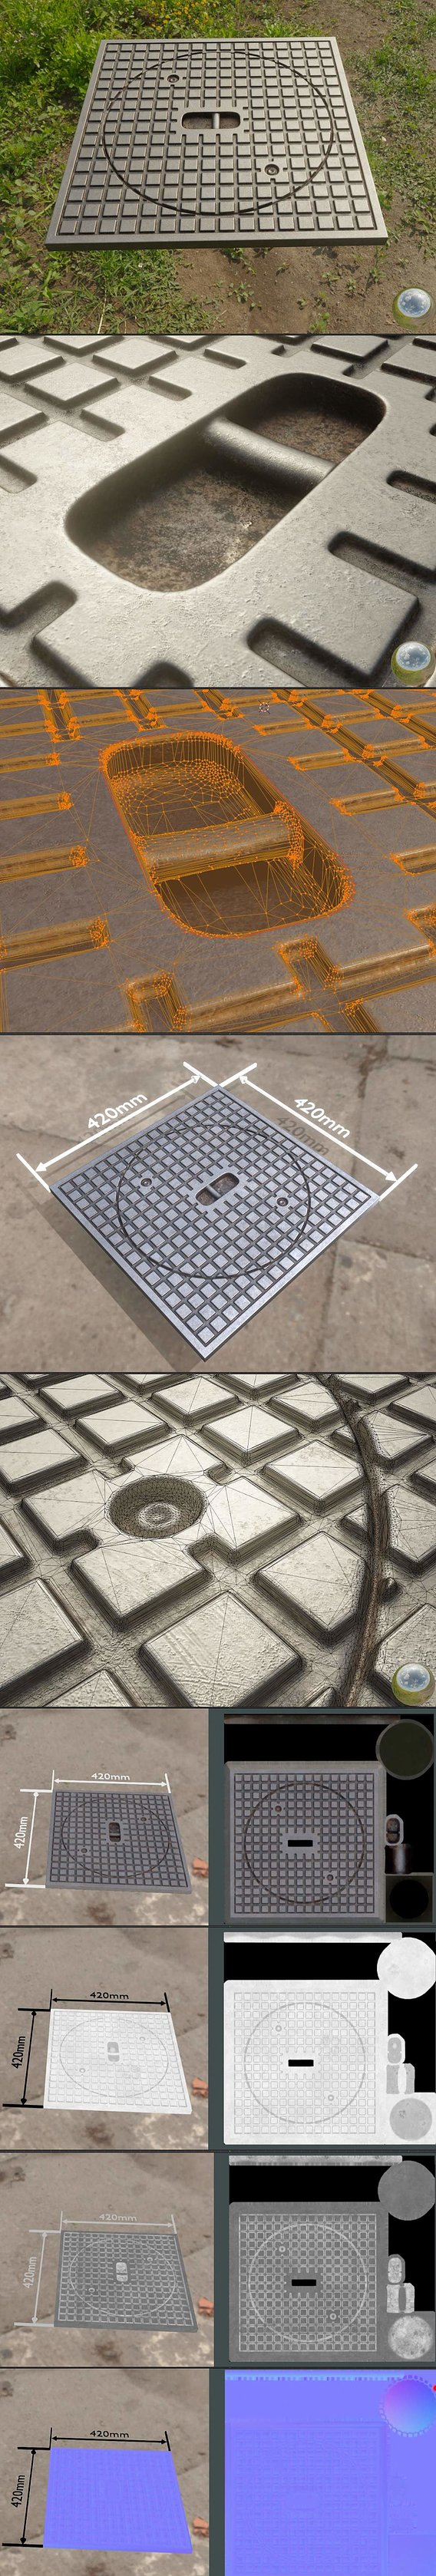 Sewer Cover 5 High-Poly PBR-Textured Version (Blender-2.92 Eevee)